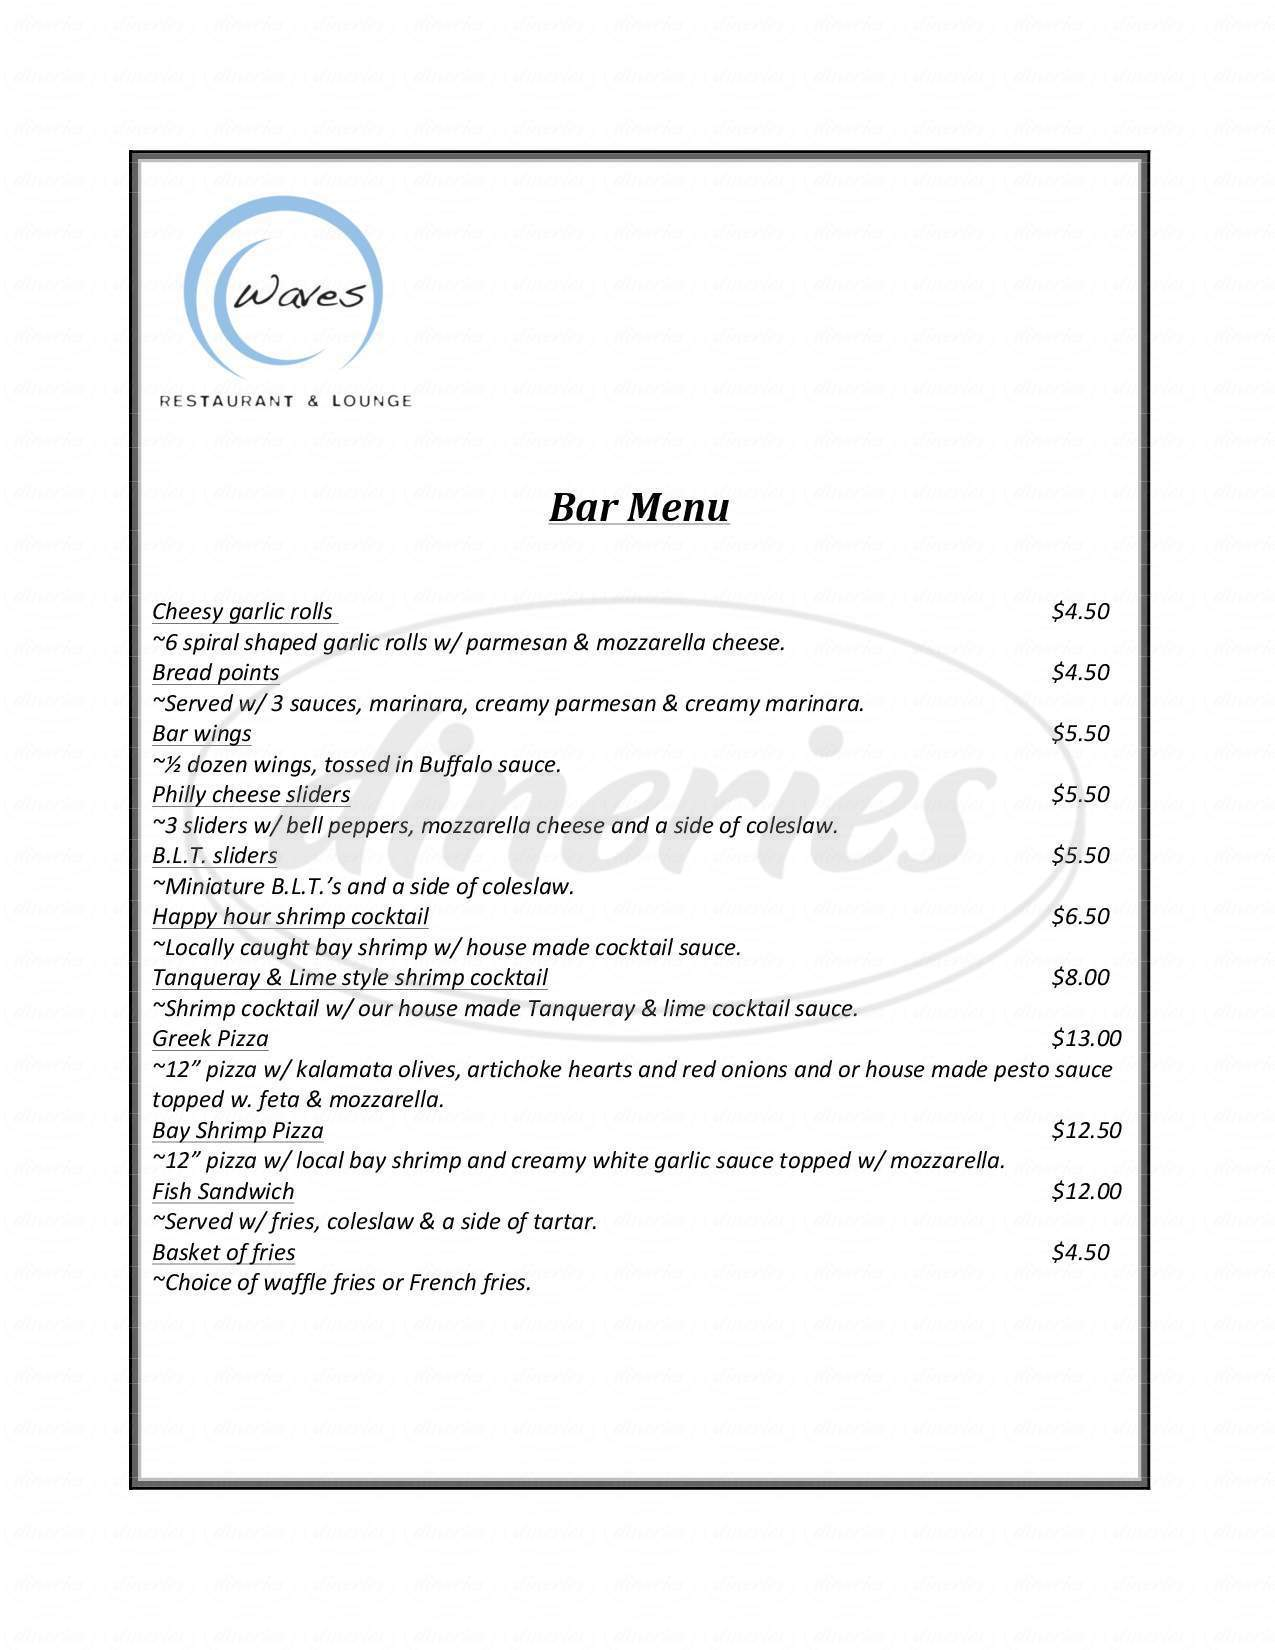 menu for Waves Restaurant and Lounge